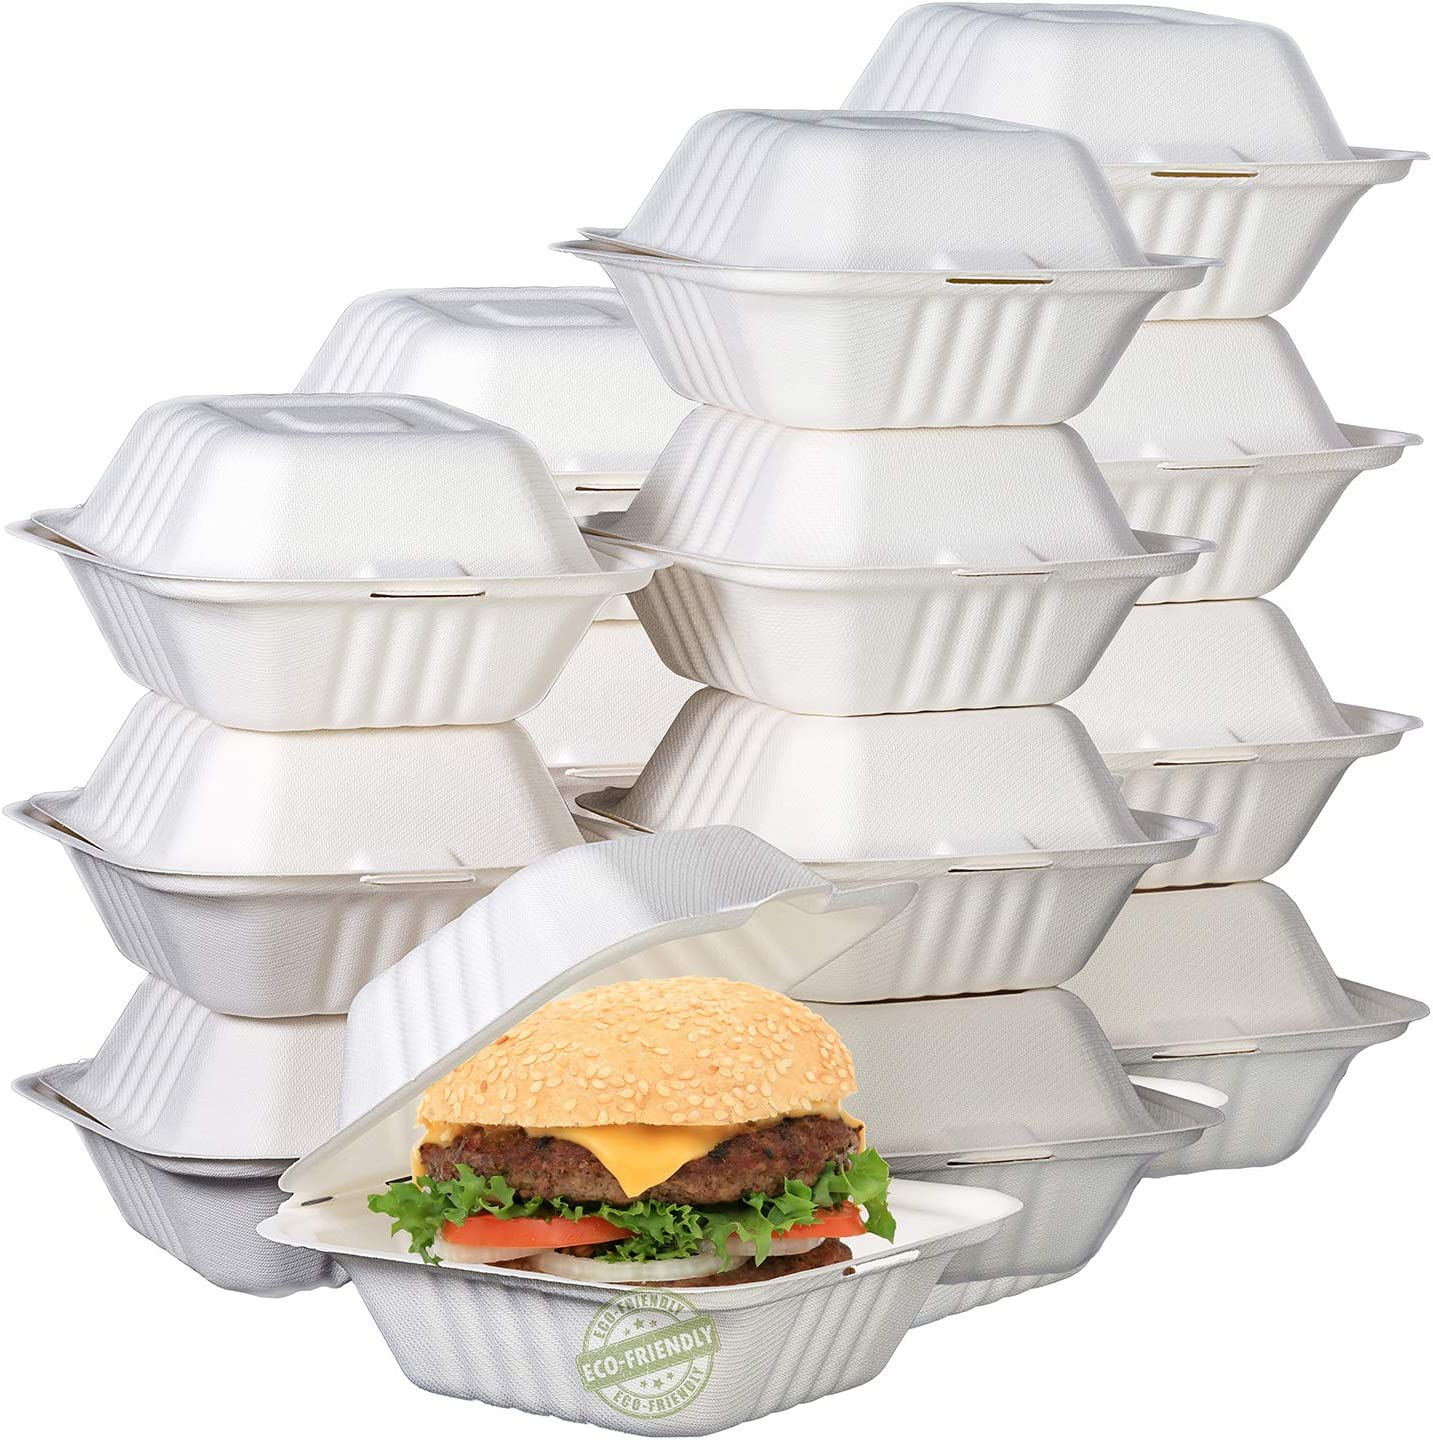 Green Earth 6-inch, 500-Count, Compostable Clamshell, Natural Bagasse (Sugarcane Fiber), Take-Out/to-Go Food Boxes - Biodegradable Containers, Hinged Lid - Microwave-Safe - Gluten-Free - Eco-Friendly